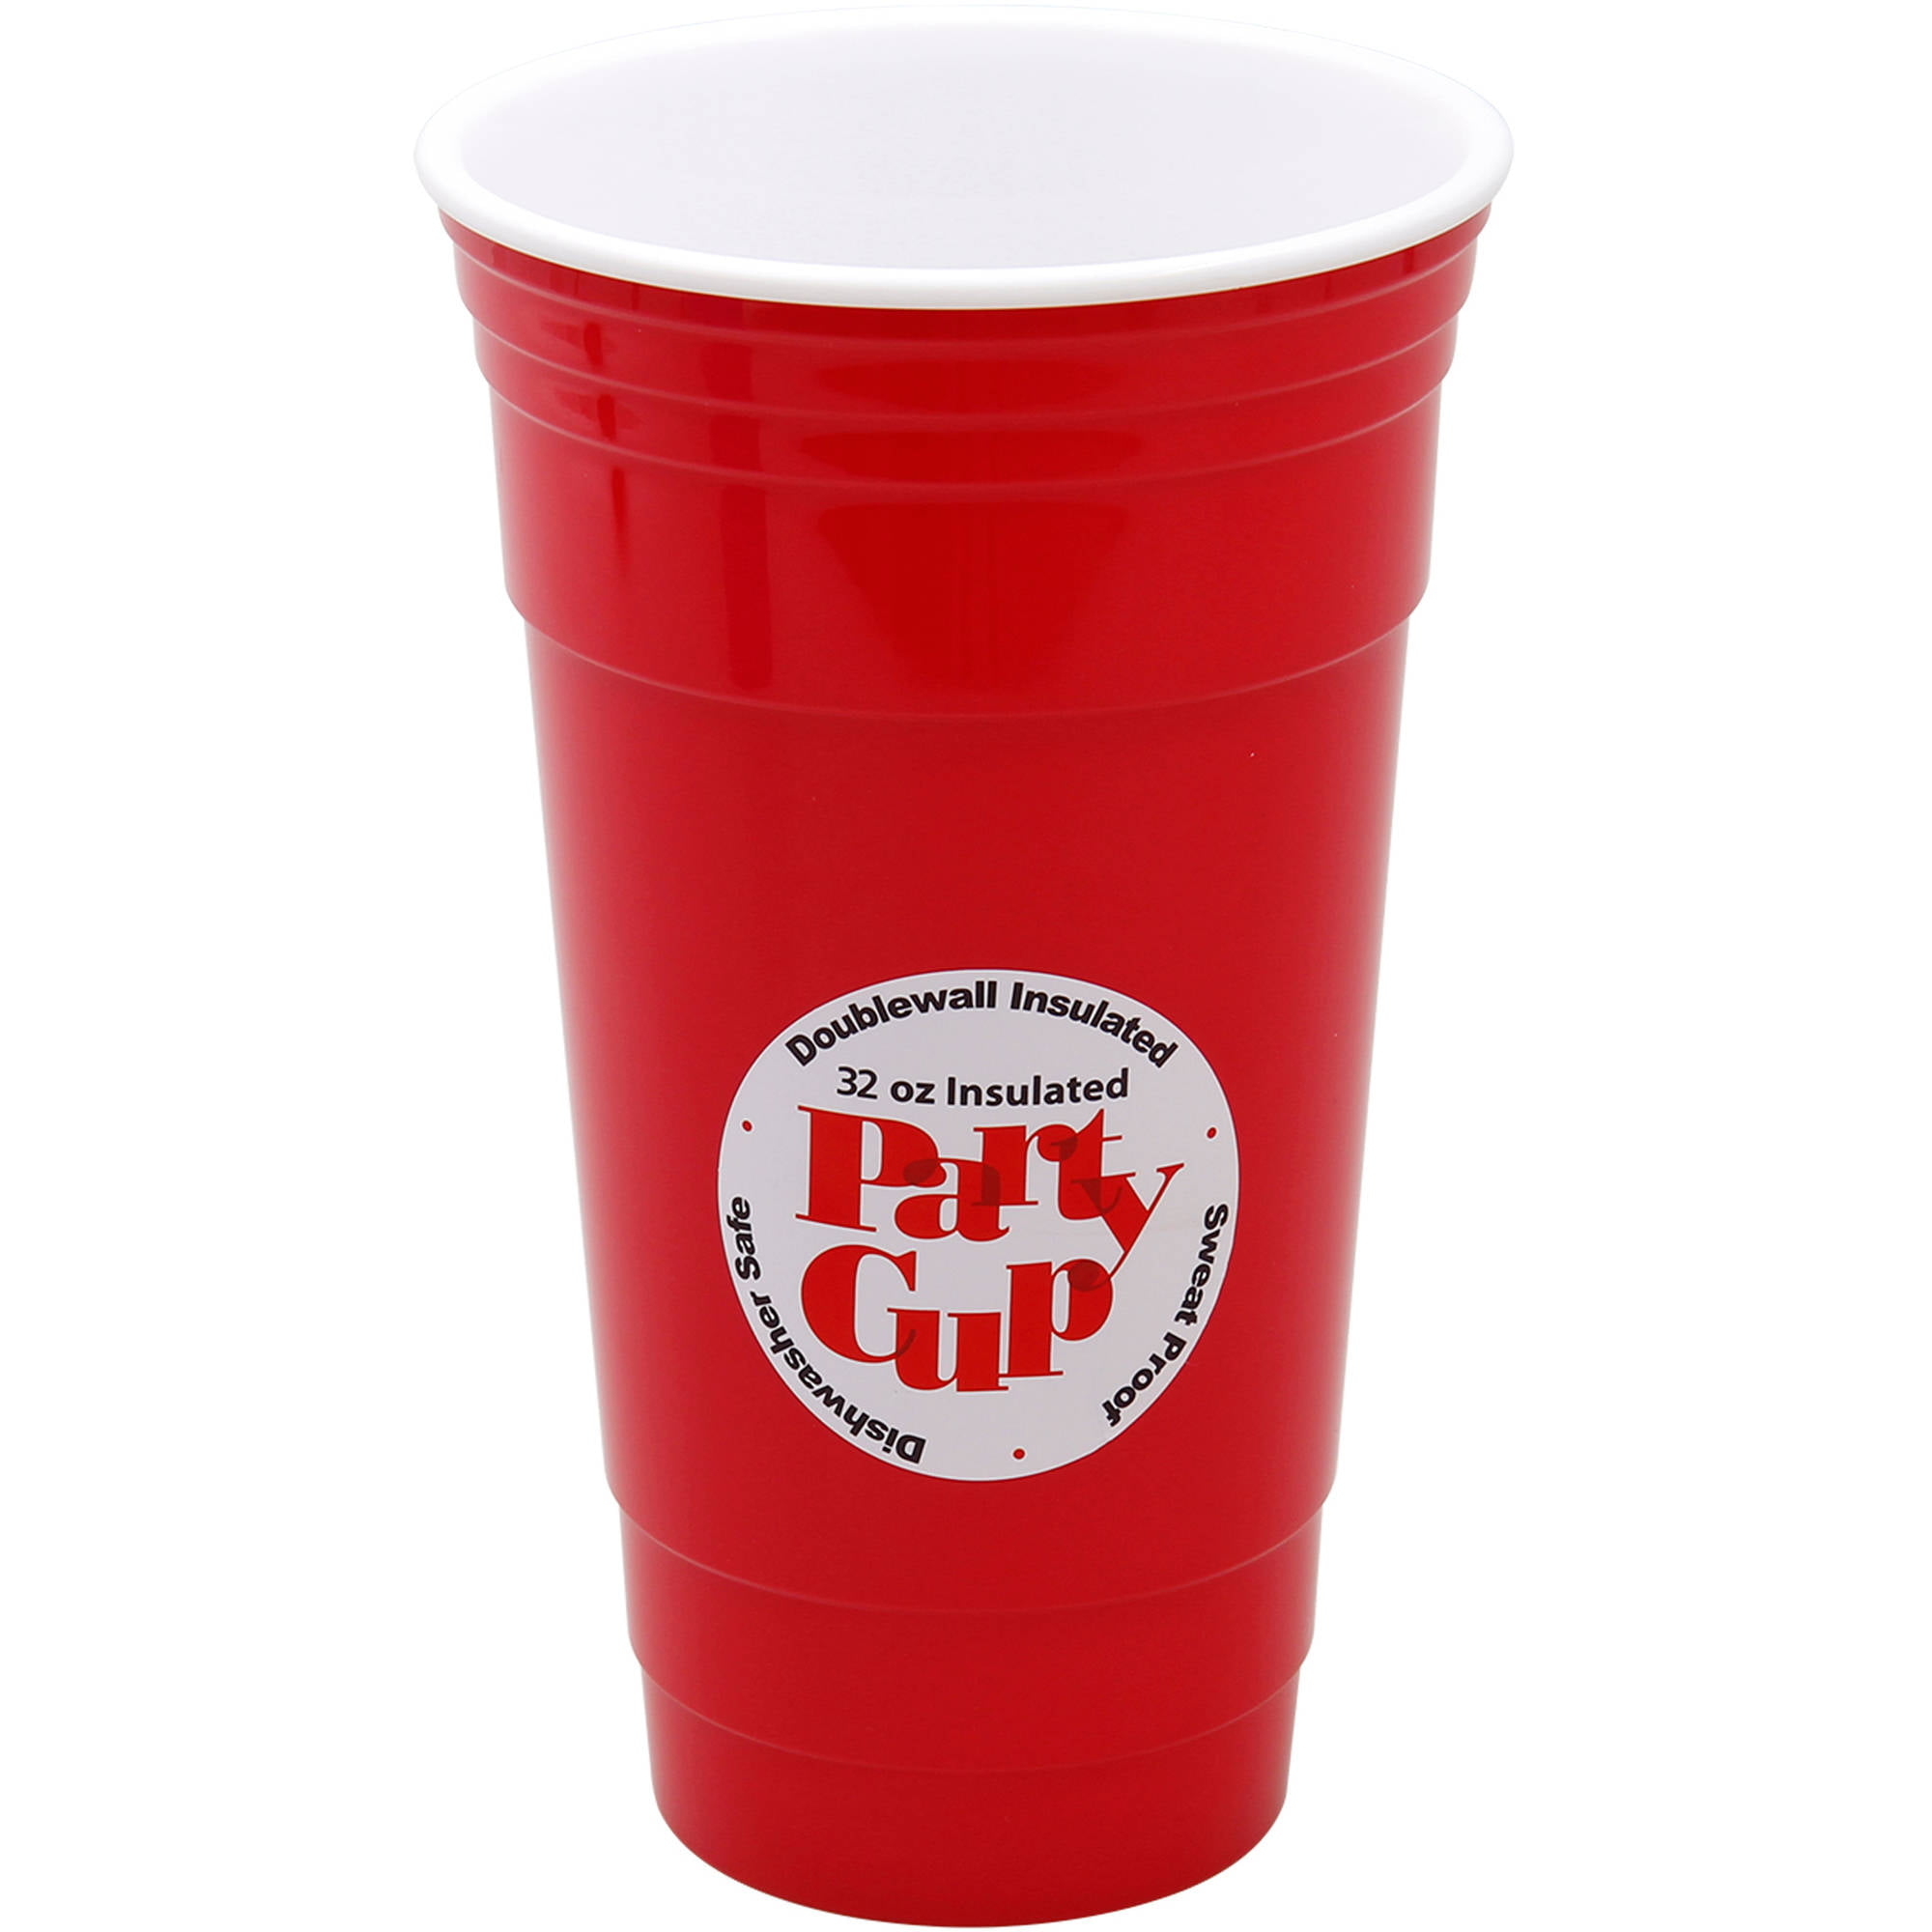 32 Oz Red Double Wall Insulated Party Cup Walmart Com